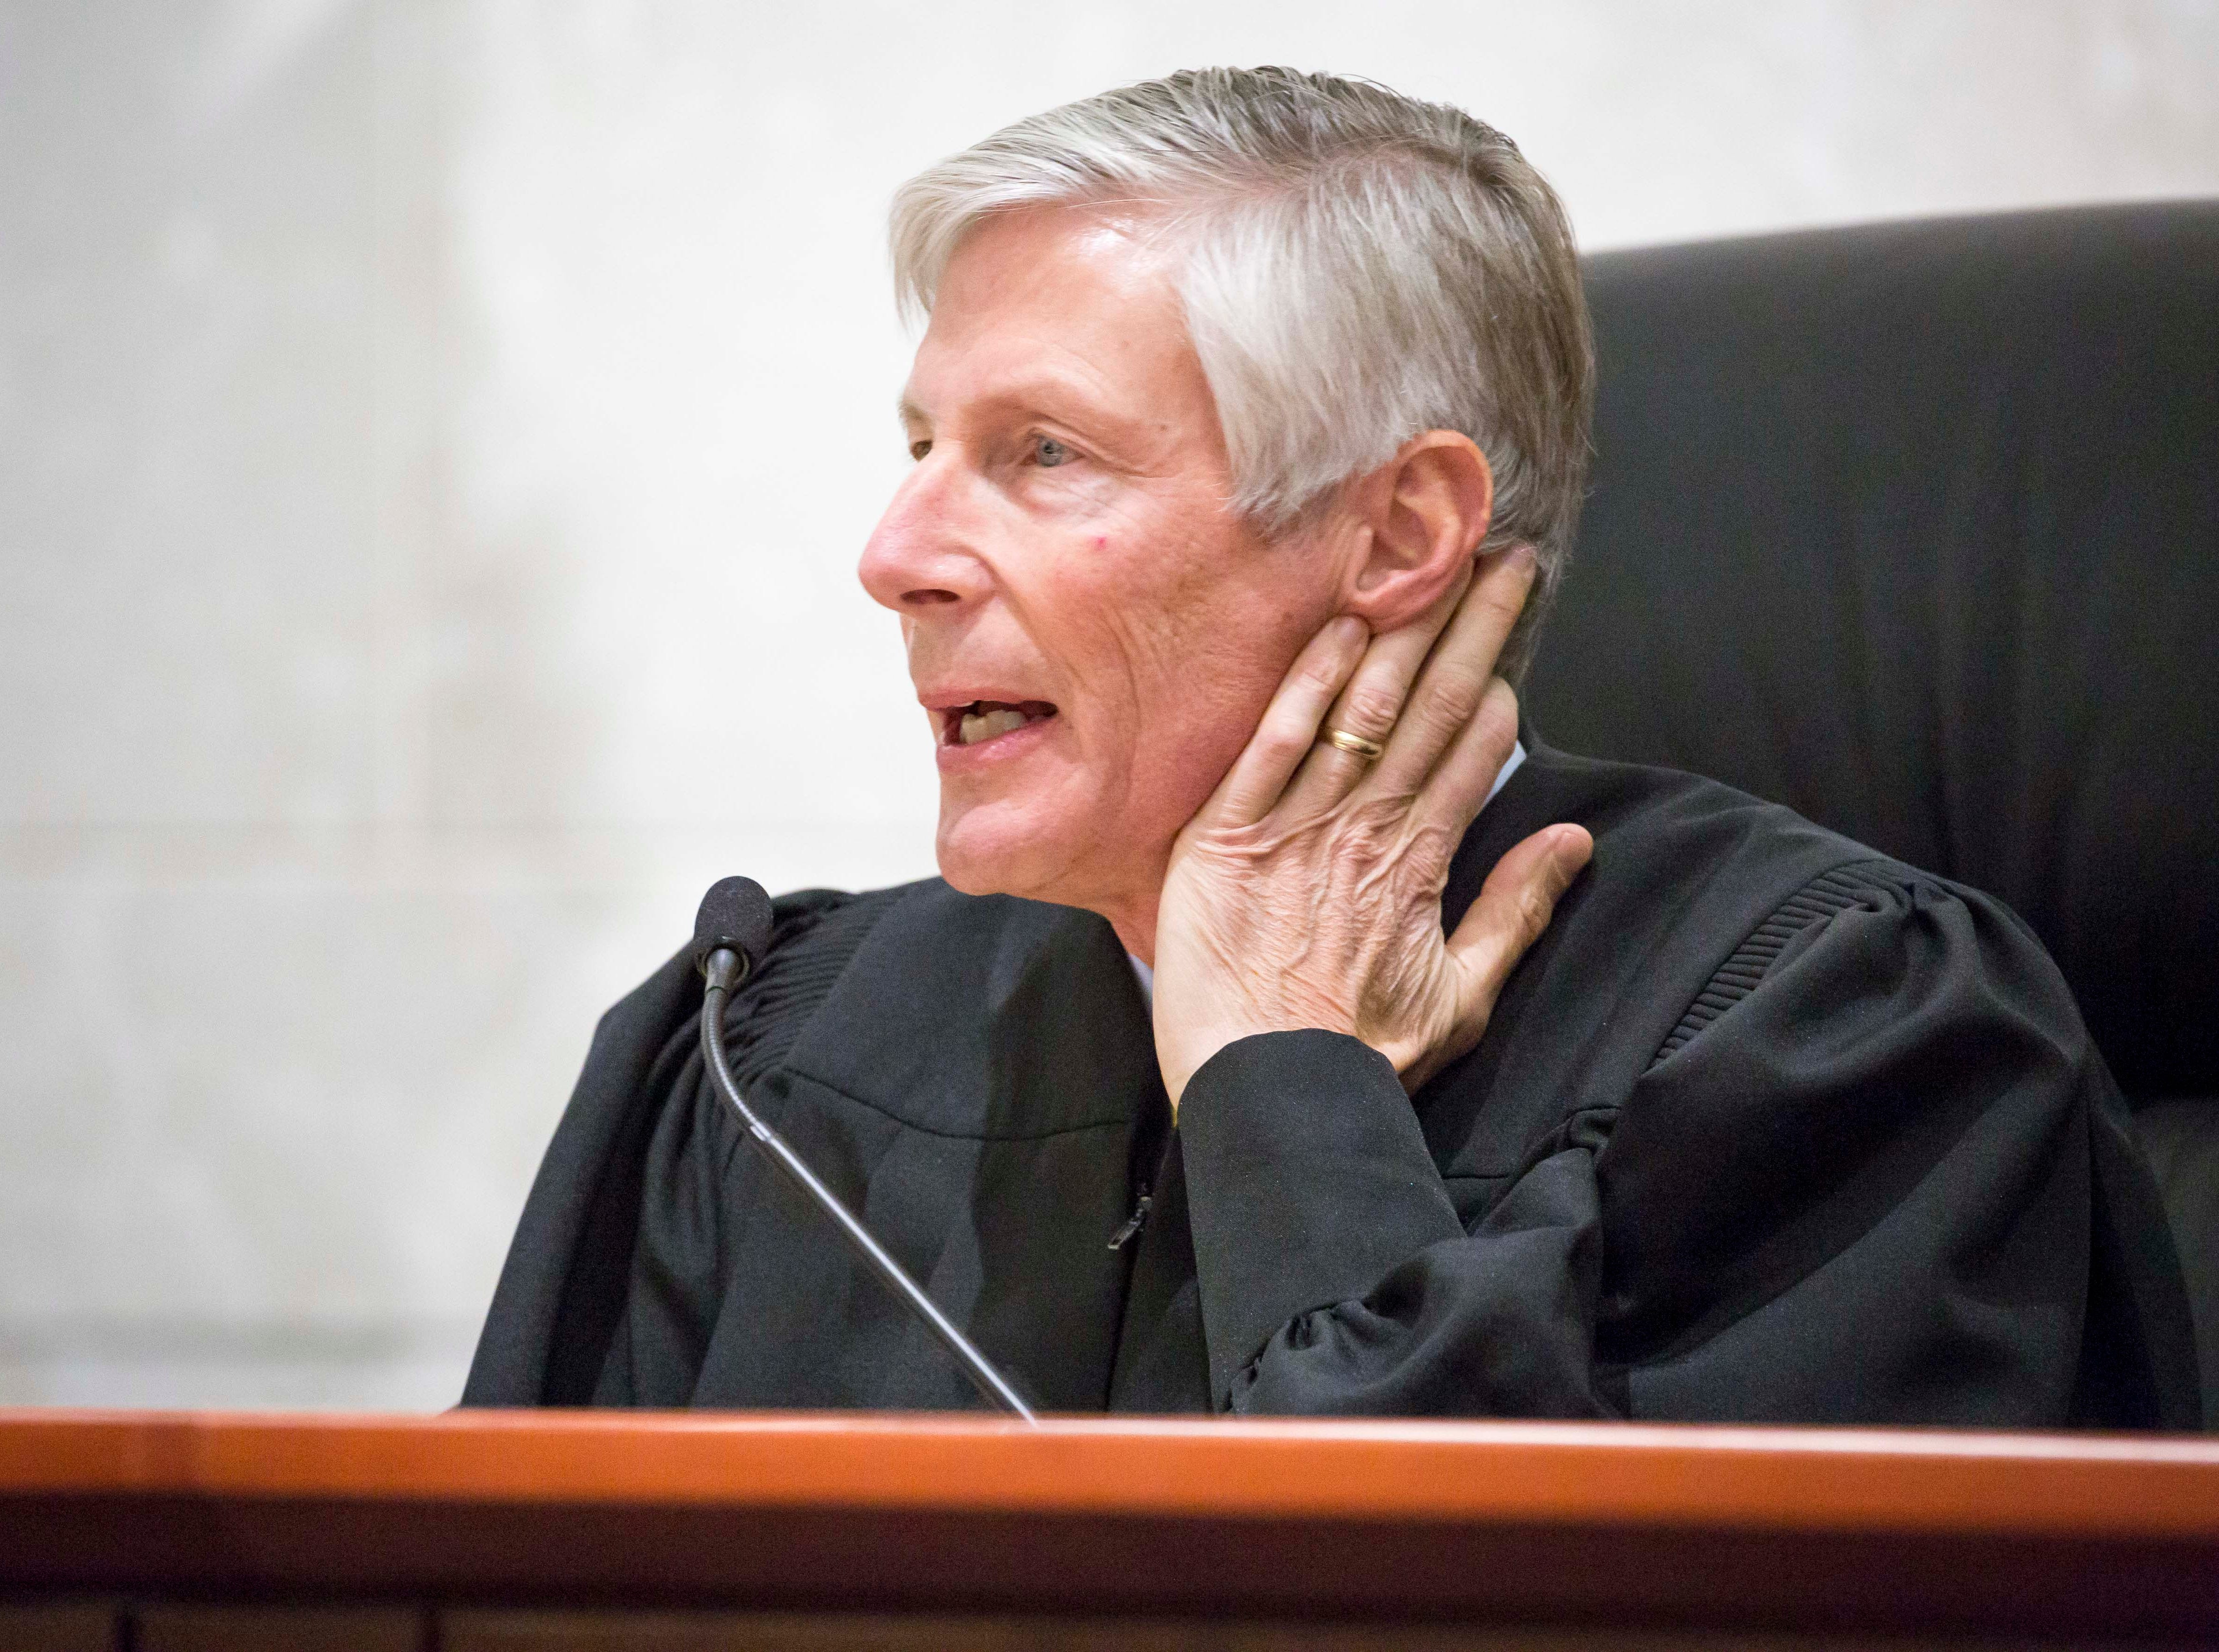 Justice Thomas D. Waterman talks to attorneys at the Iowa Supreme Court as they hear arguments in two challenges to Iowa's collective bargaining law change last year. The challenges are from AFSCME and the Iowa State Education Association at the Judicial Building Wednesday, Dec. 12, 2018, in Des Moines, Iowa.